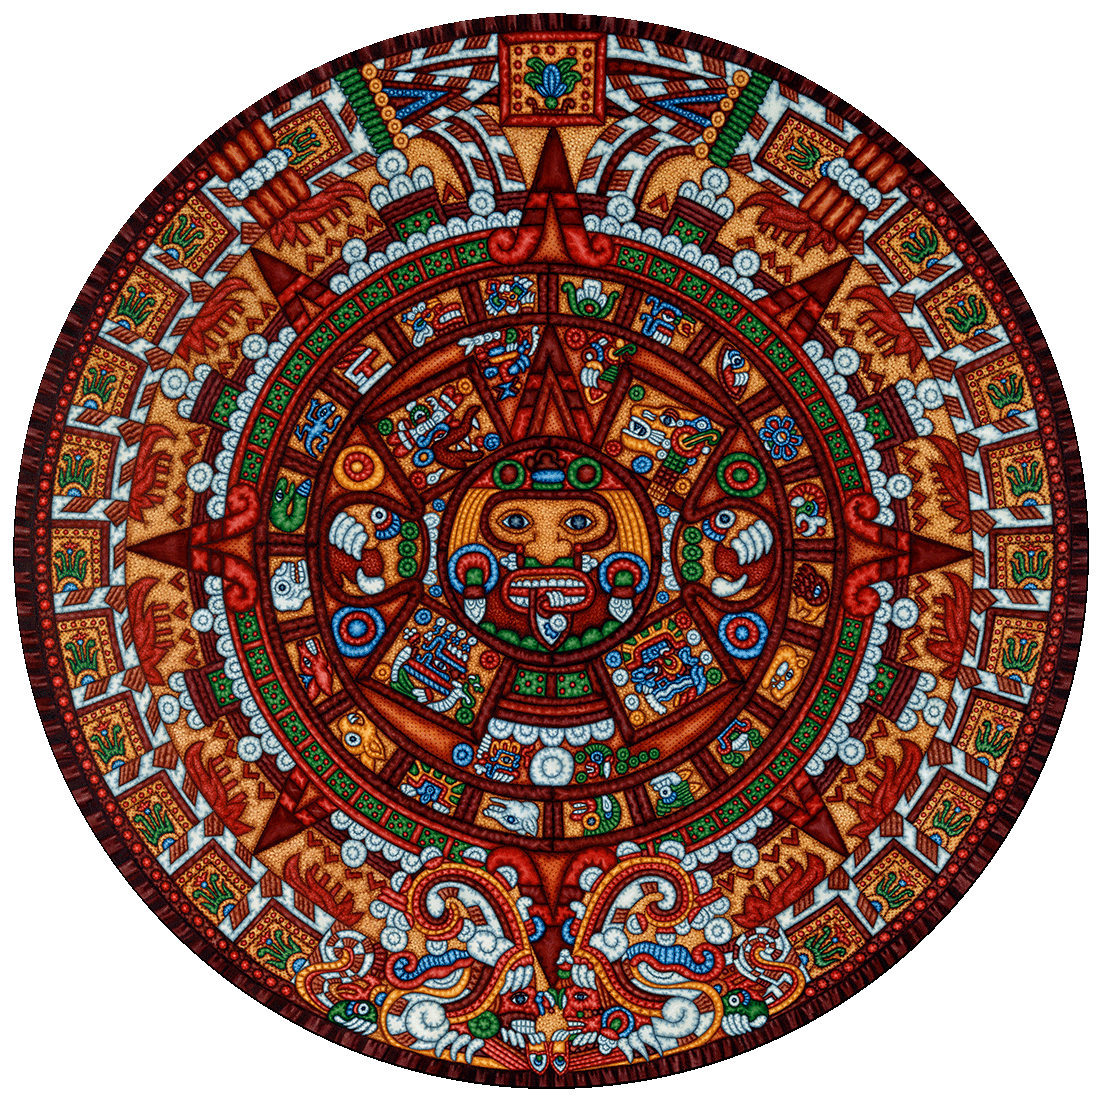 Pin By Aaron Wester On Eric Dowdle Folk Art Collection Aztec Calendar Aztec Art Puzzle Art